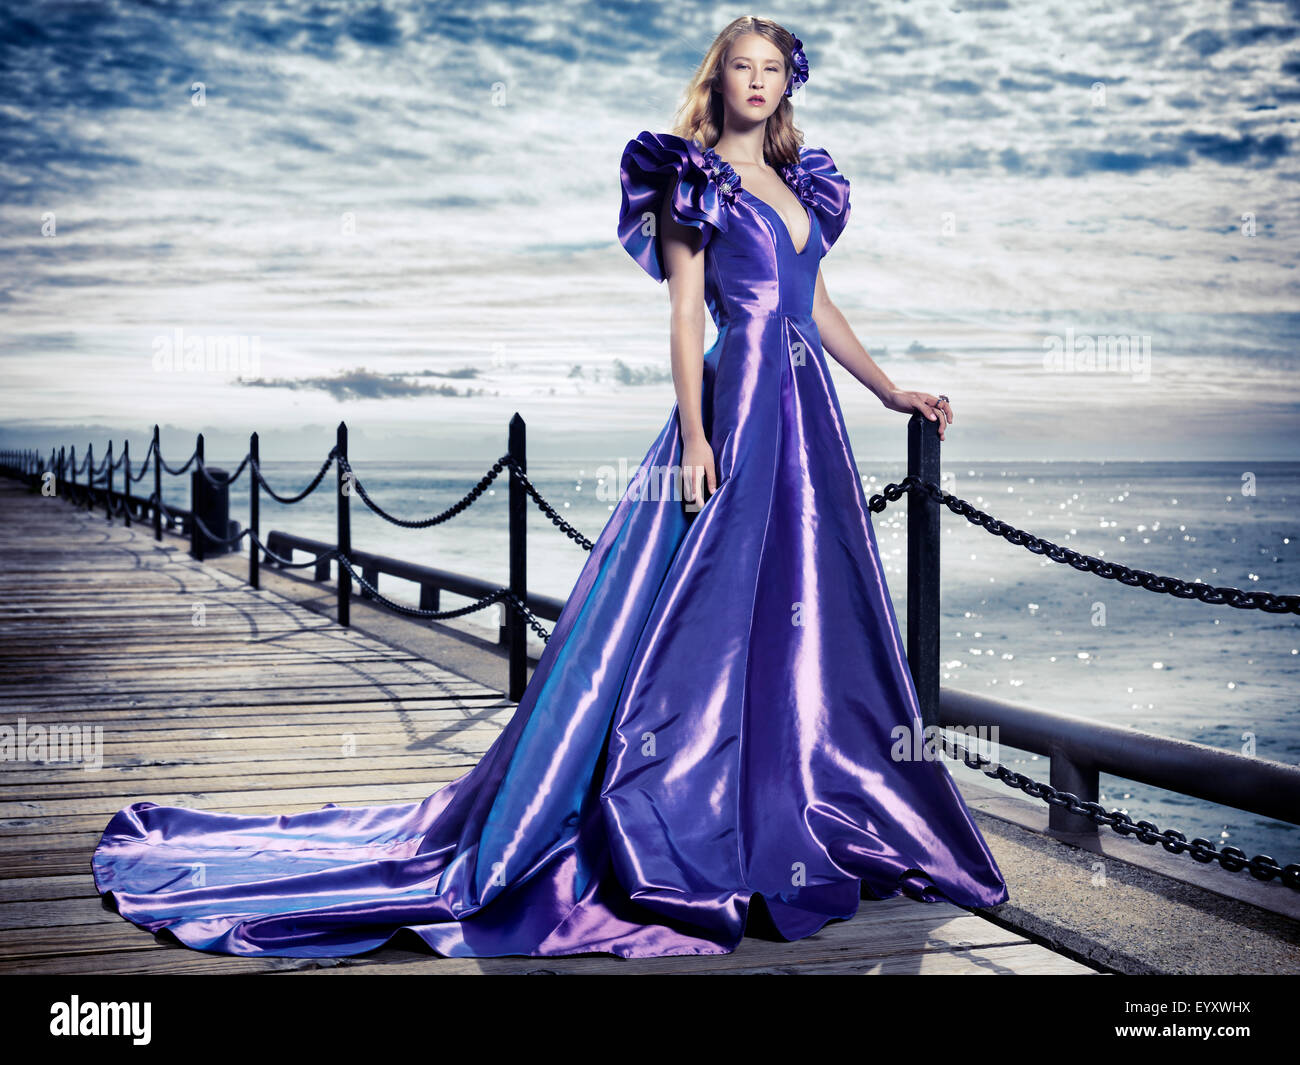 Young woman wearing a beautiful long blue evening gown standing at waterfront, artistic fashion portrait - Stock Image